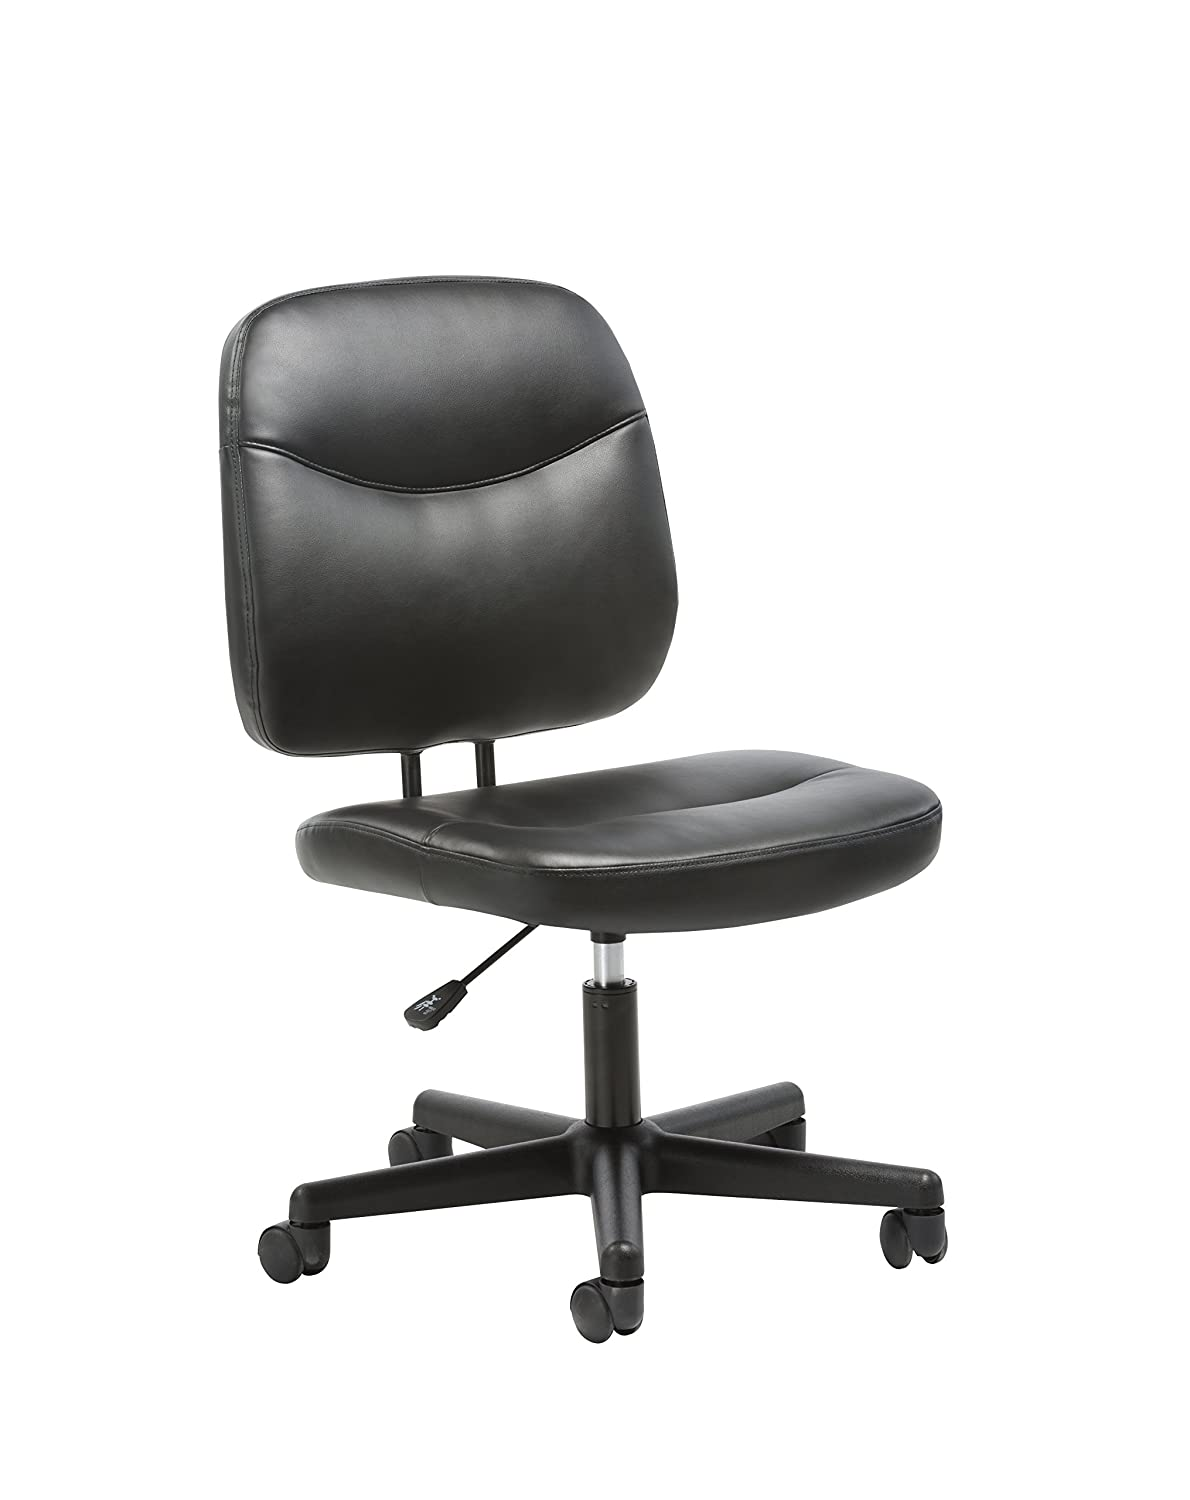 Essentials Leather Task Chair - Ergonomic Adjustable Office Chair, Black (ESS-6005)